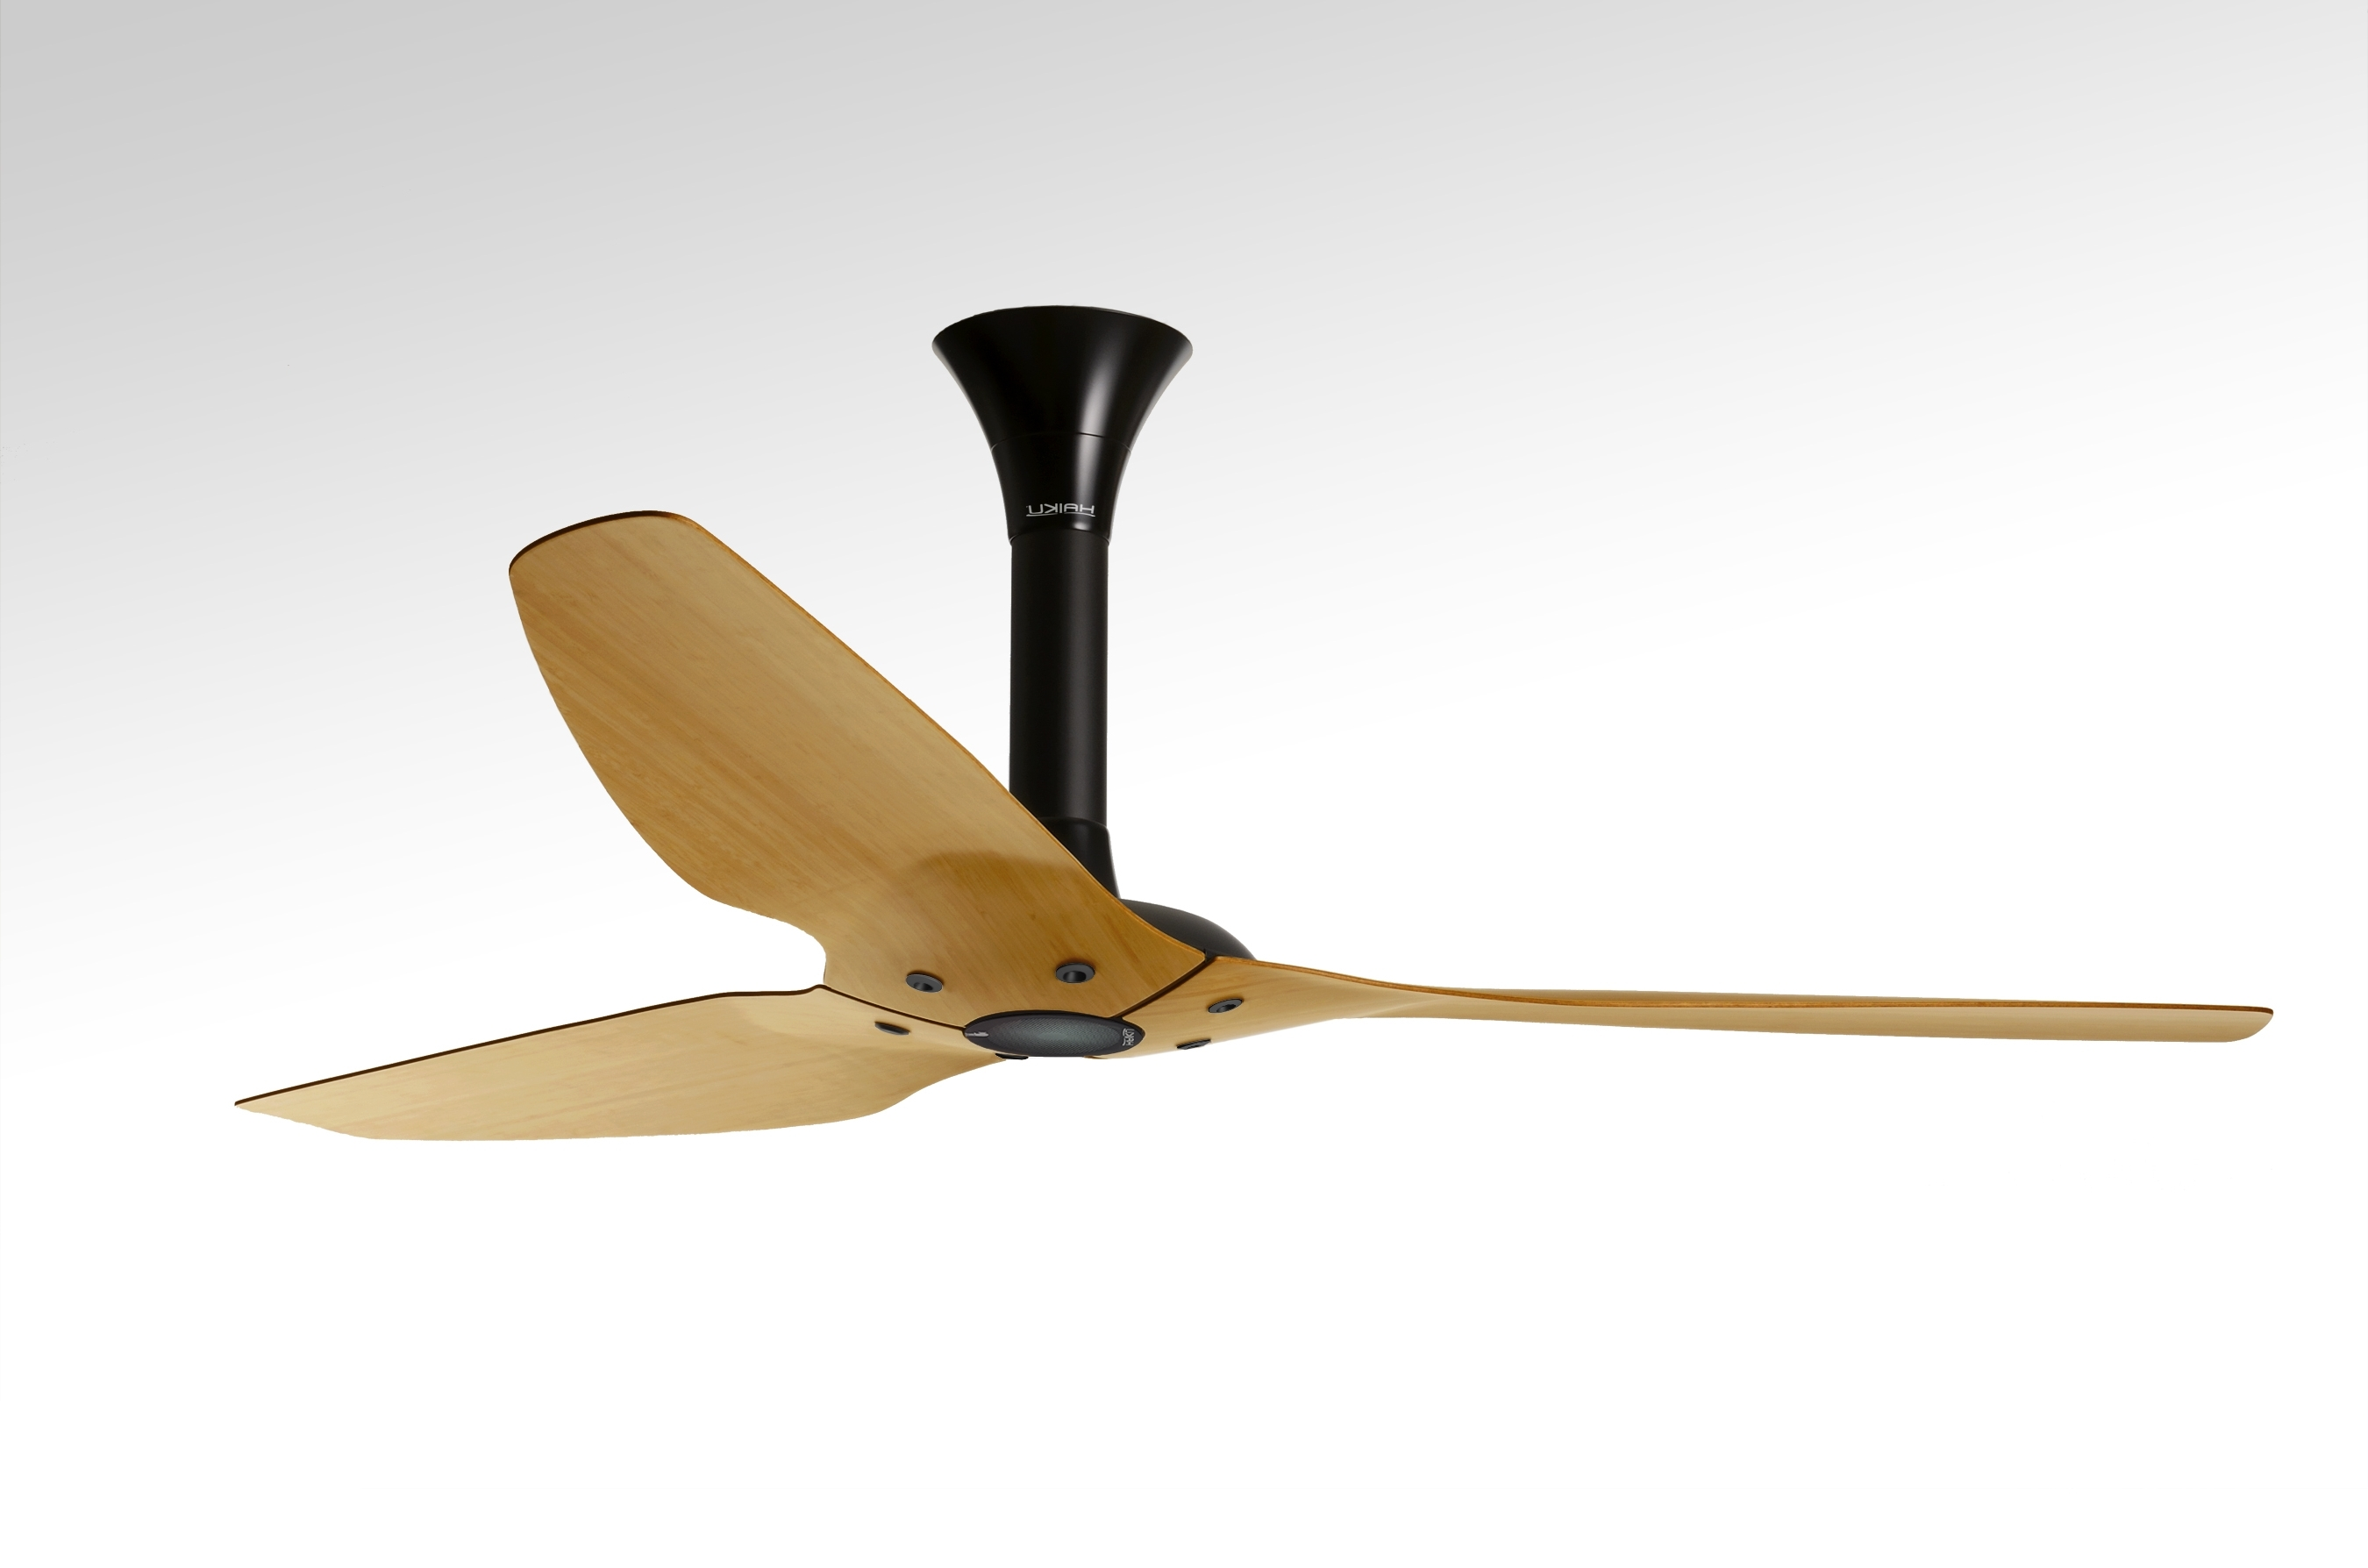 Bamboo Outdoor Ceiling Fans Intended For Recent Bamboo Ceiling Fans With Lights With Regard To House (Gallery 11 of 20)